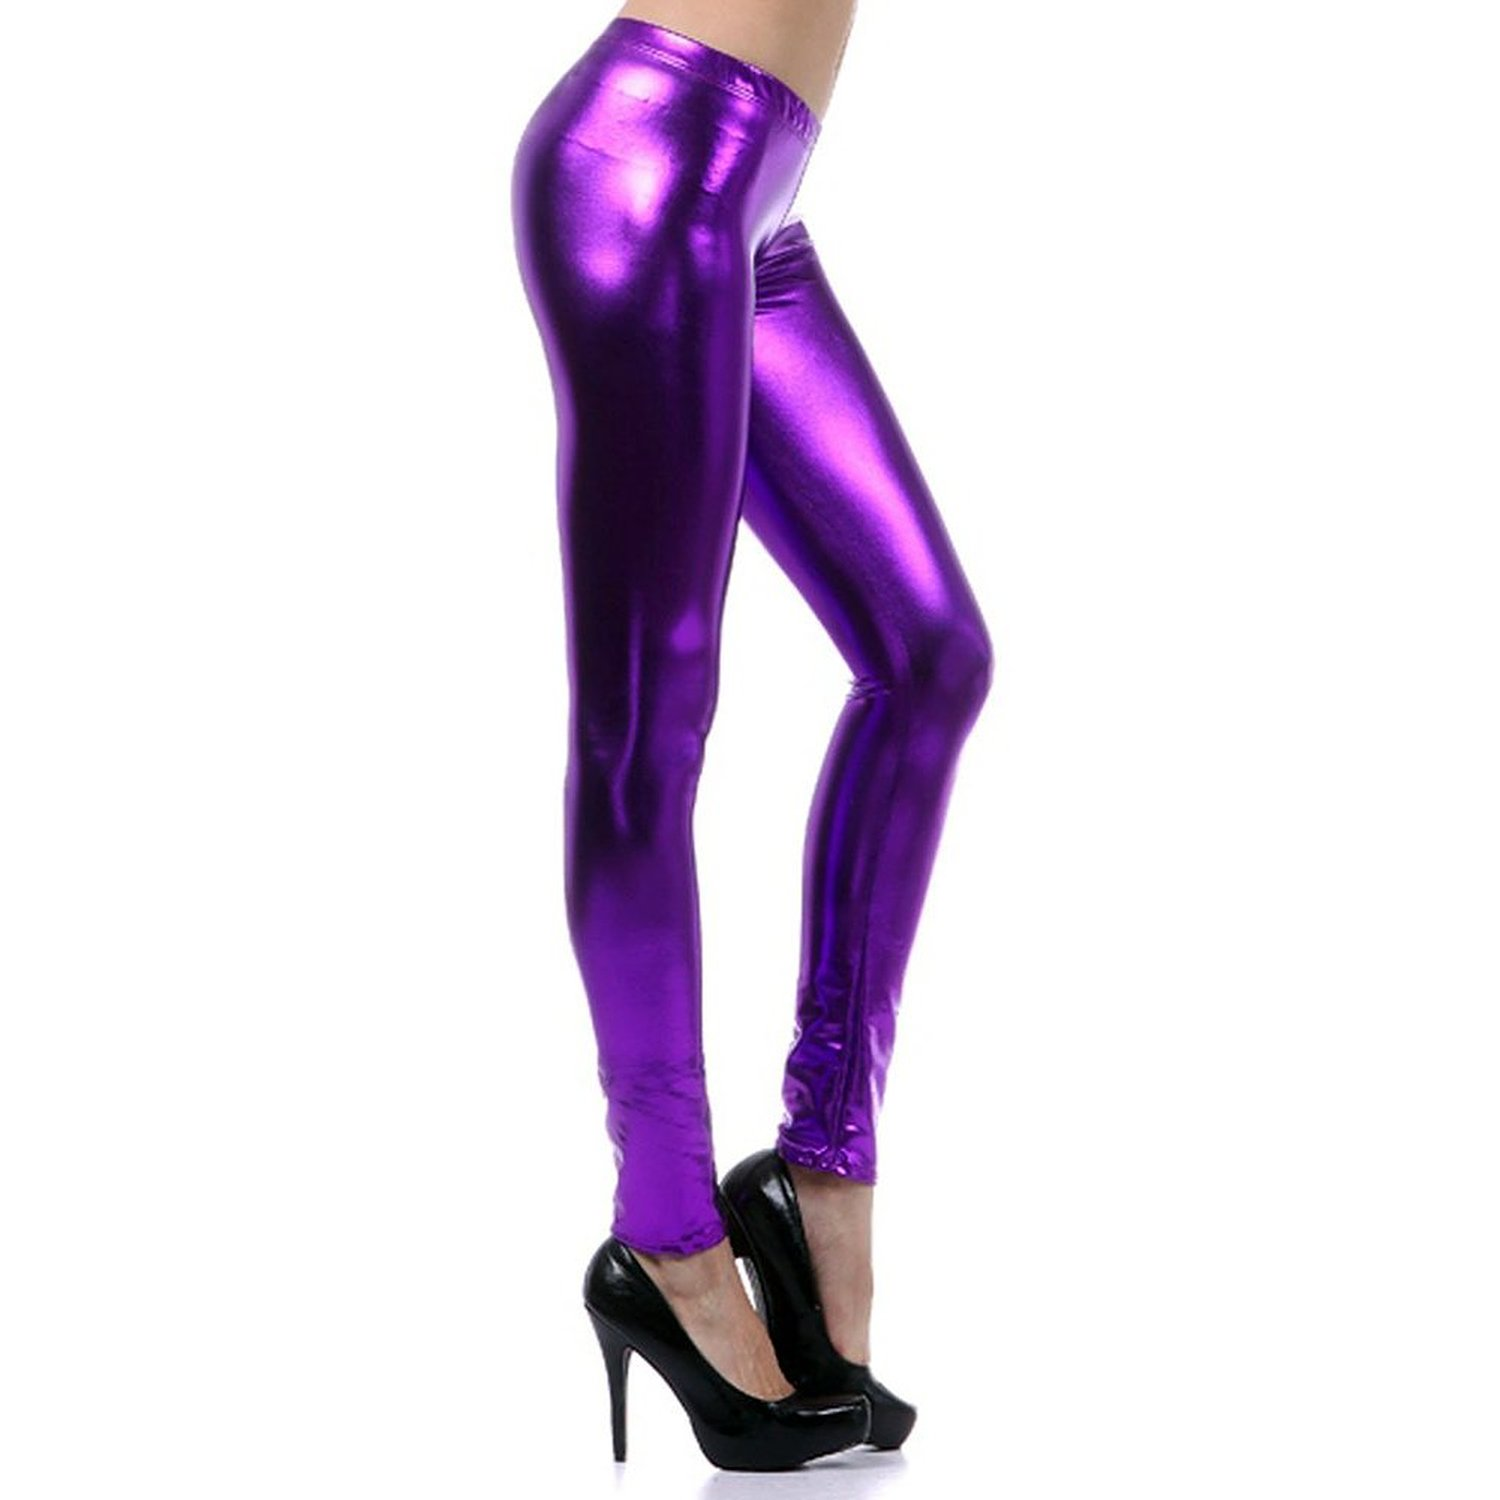 LOCOMO Women Metallic Color Shiny Wet Look PU Leather Legging Purple FFT116PUR, One Size at Amazon Women's Clothing store: Leggings Pants